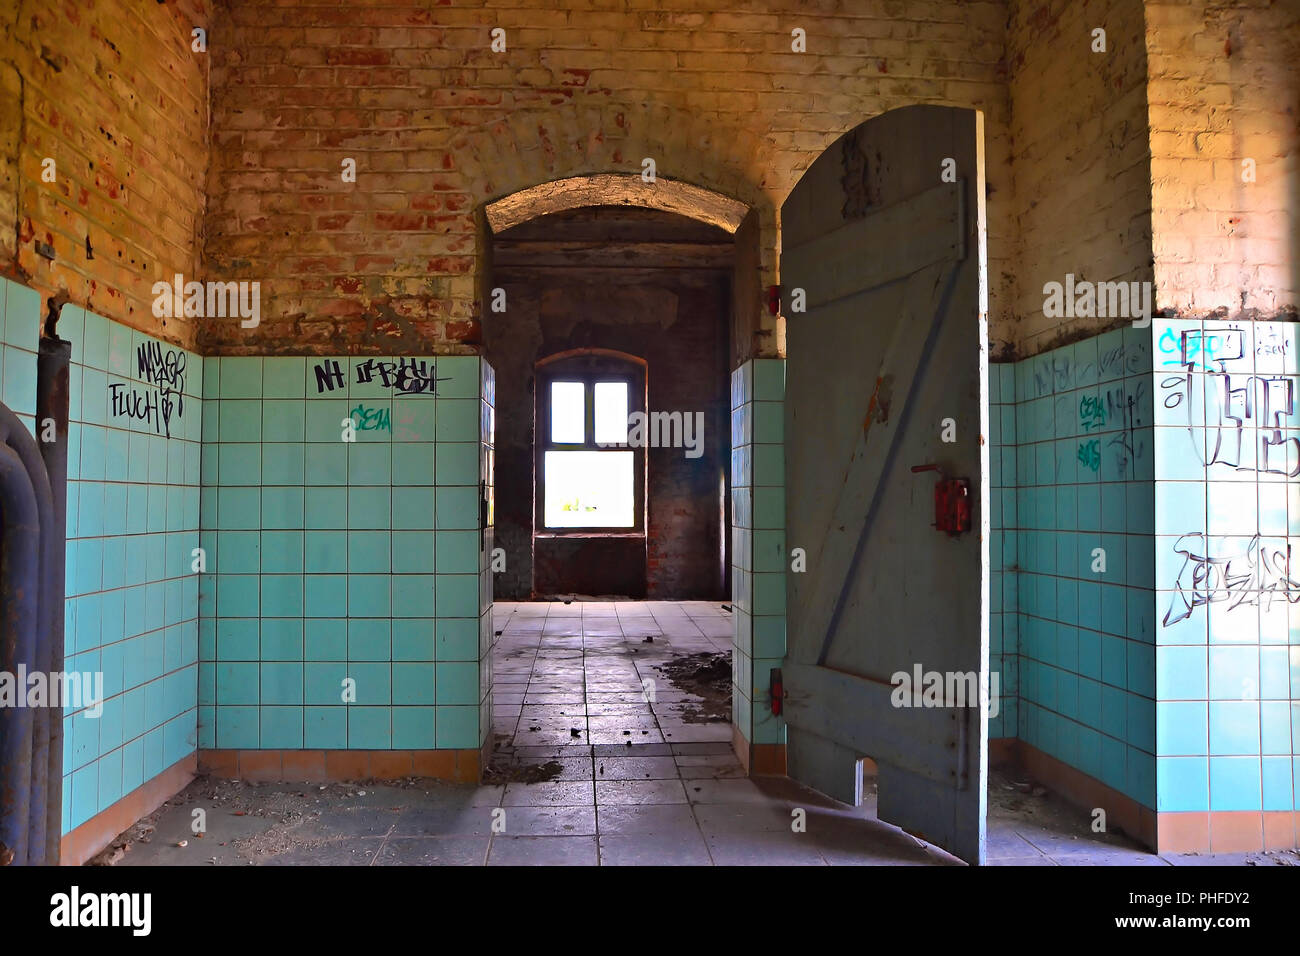 Room in a former brewery in Magdeburg - Stock Image